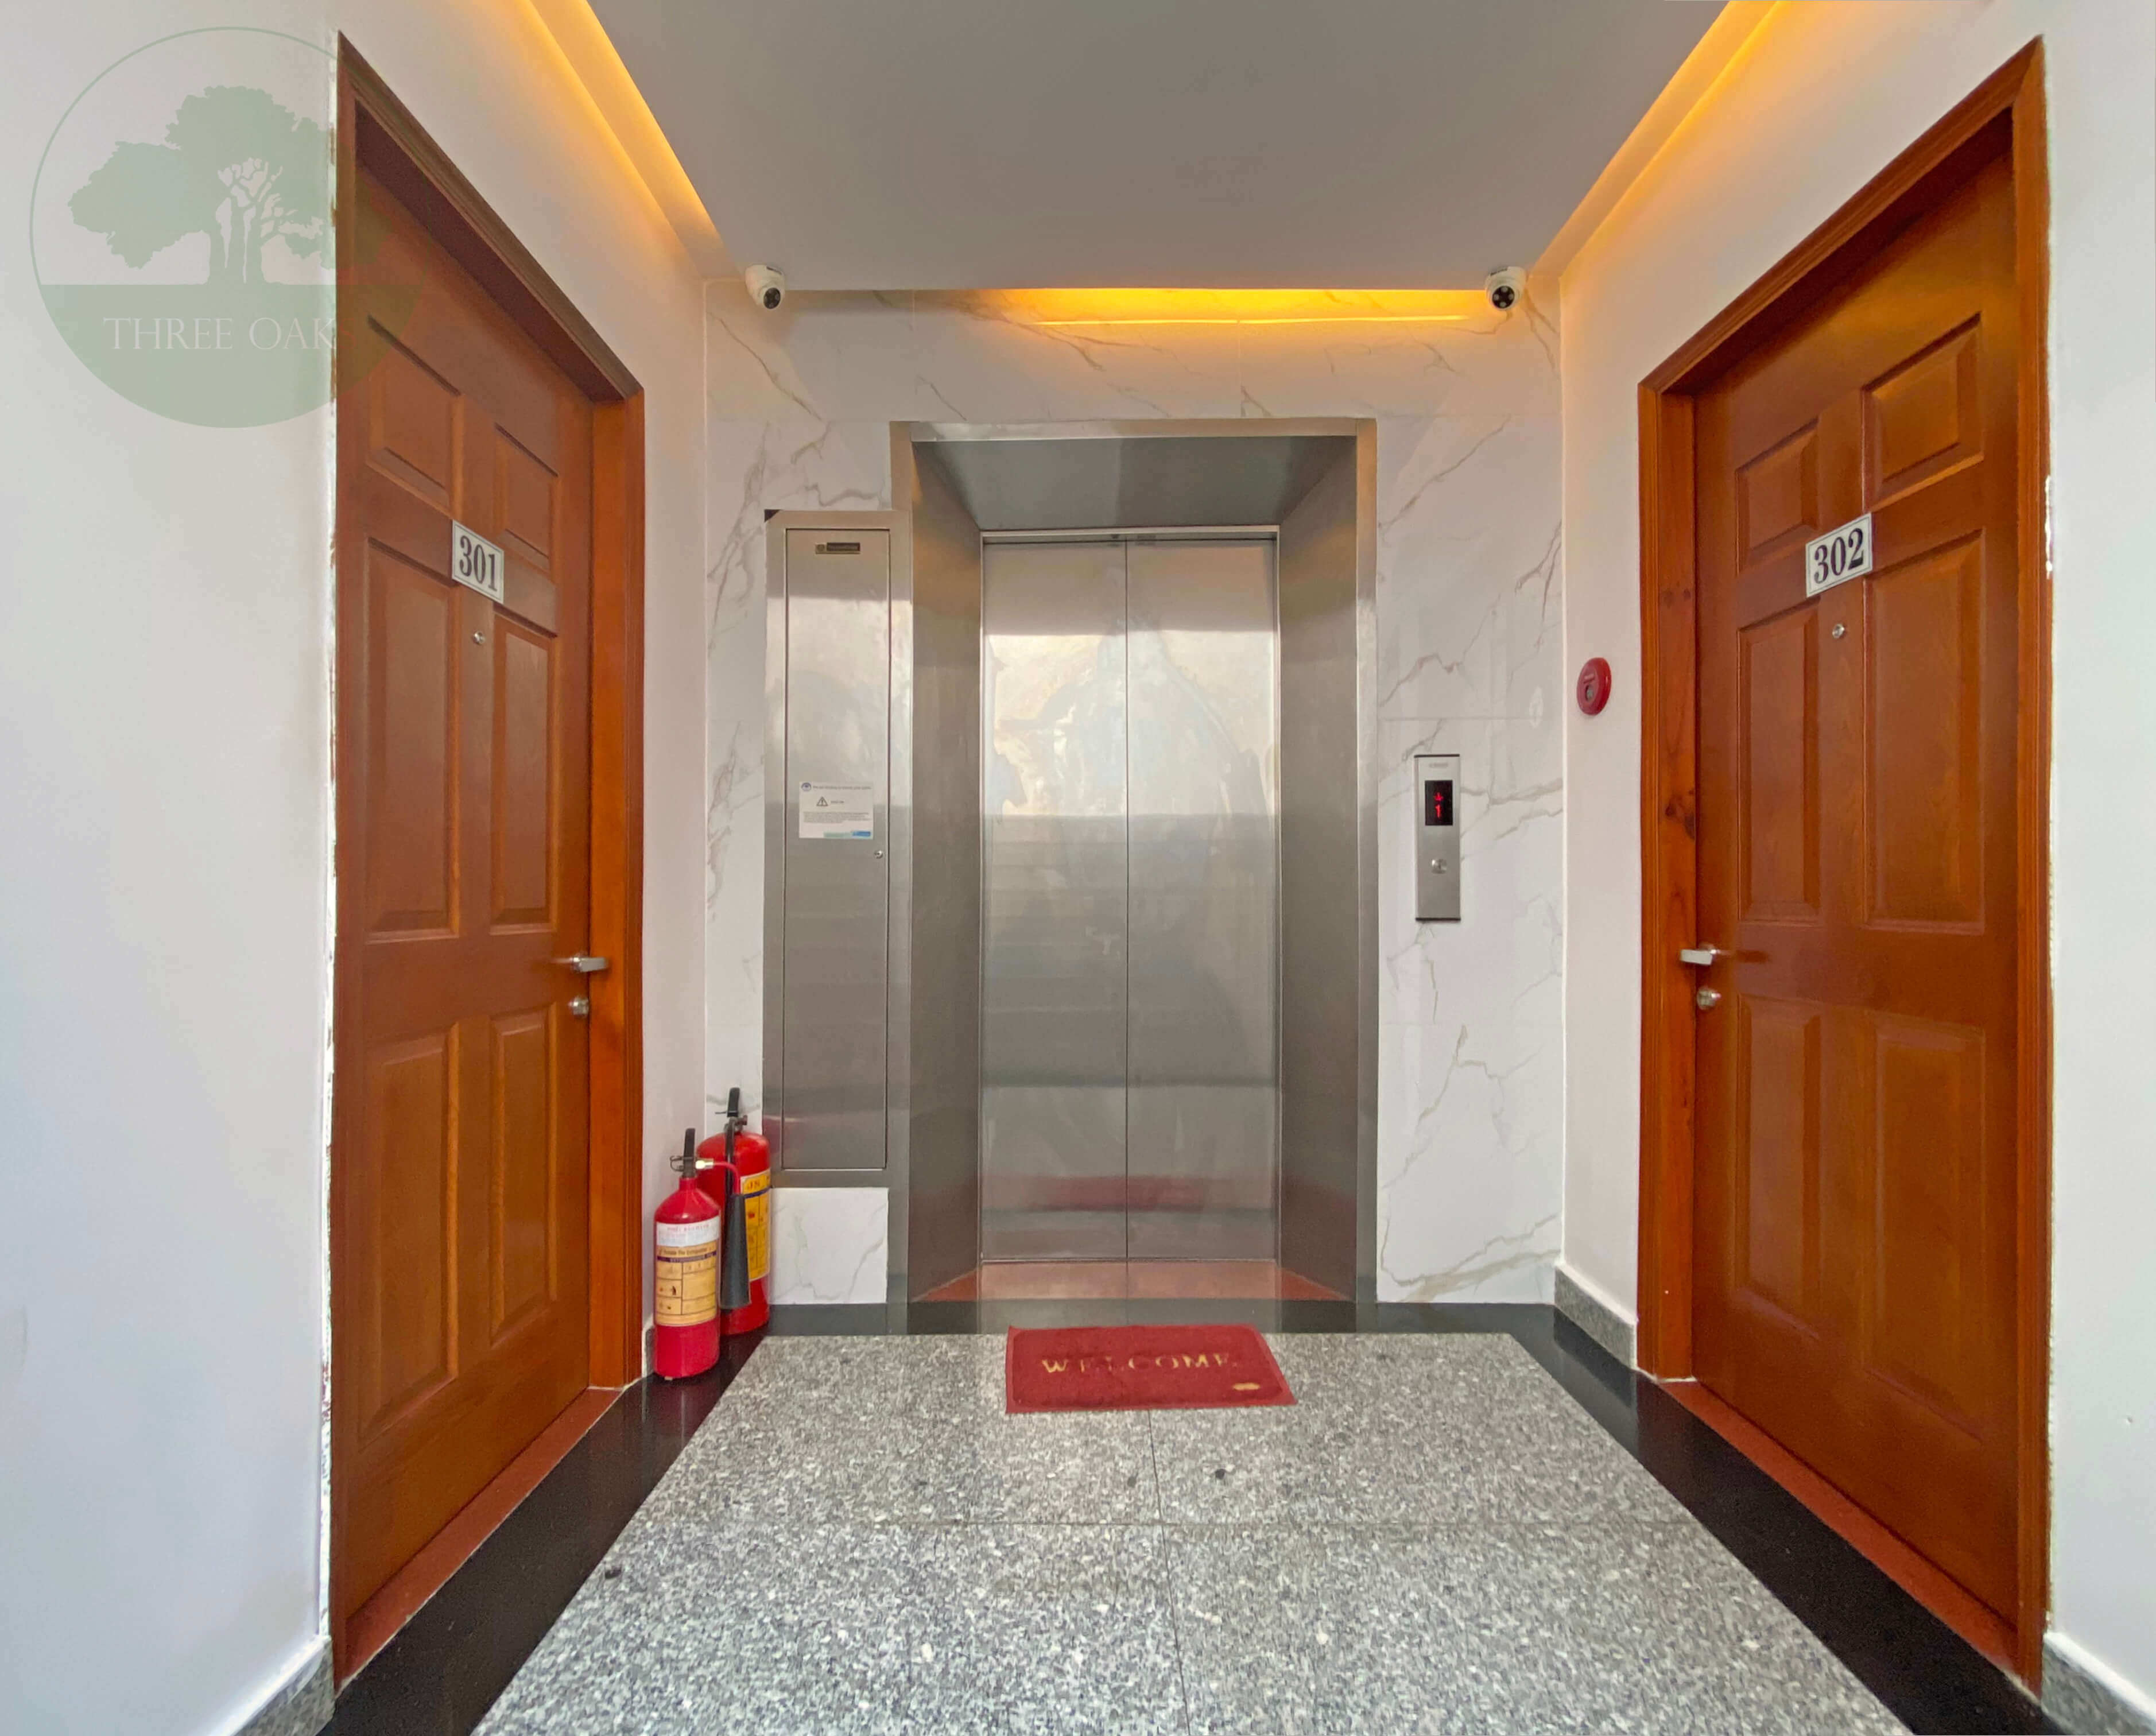 serviced-aparment-room-for-rent-saigon-One-bedroom-in-Ho-Chi-Minh-City-superior-10